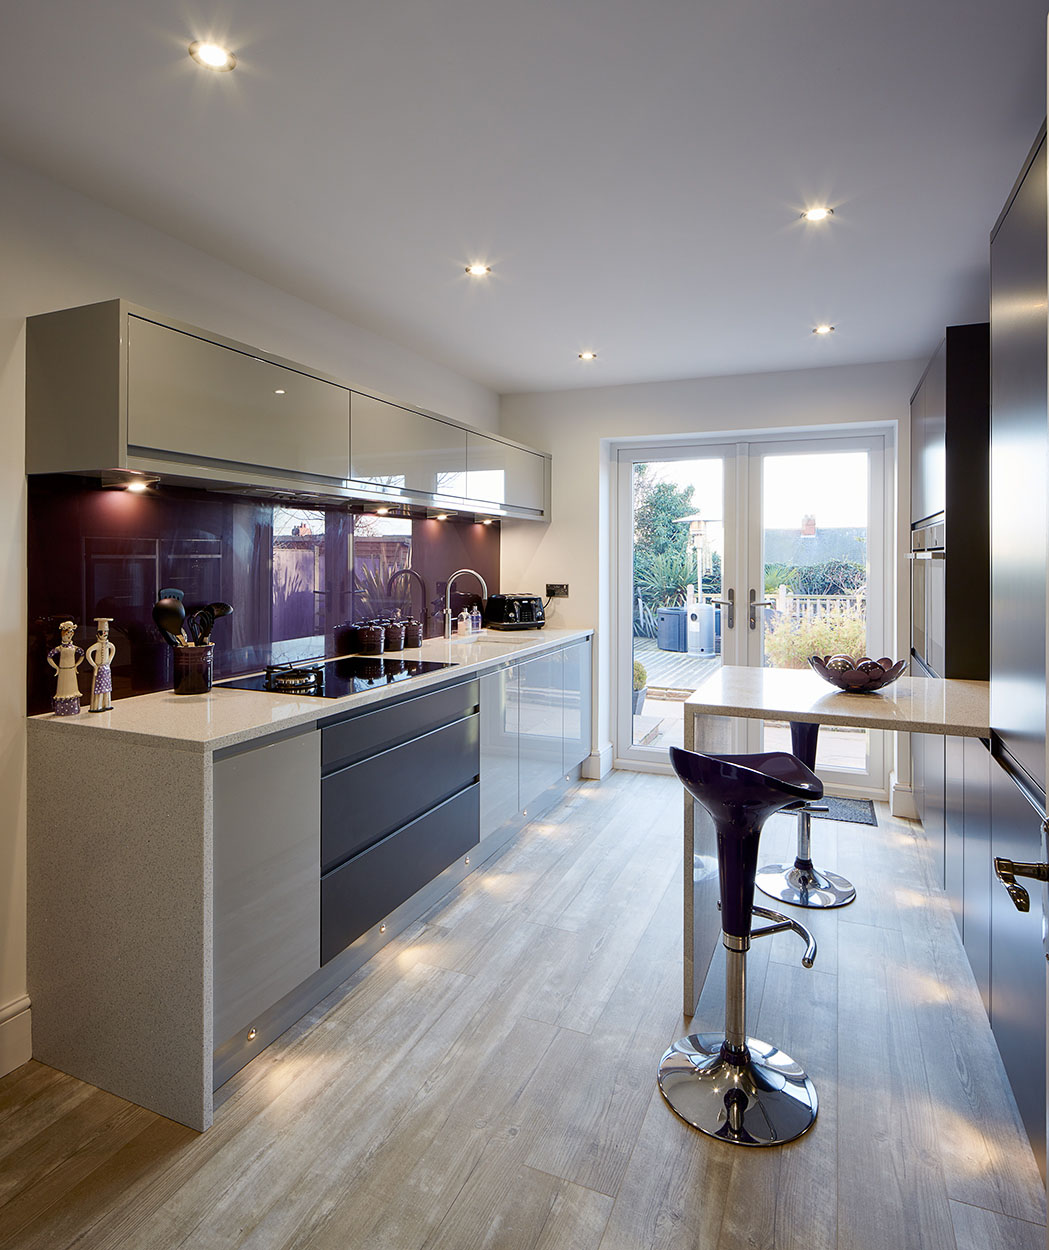 Panoramic view of white kitchen with a purple splashback.